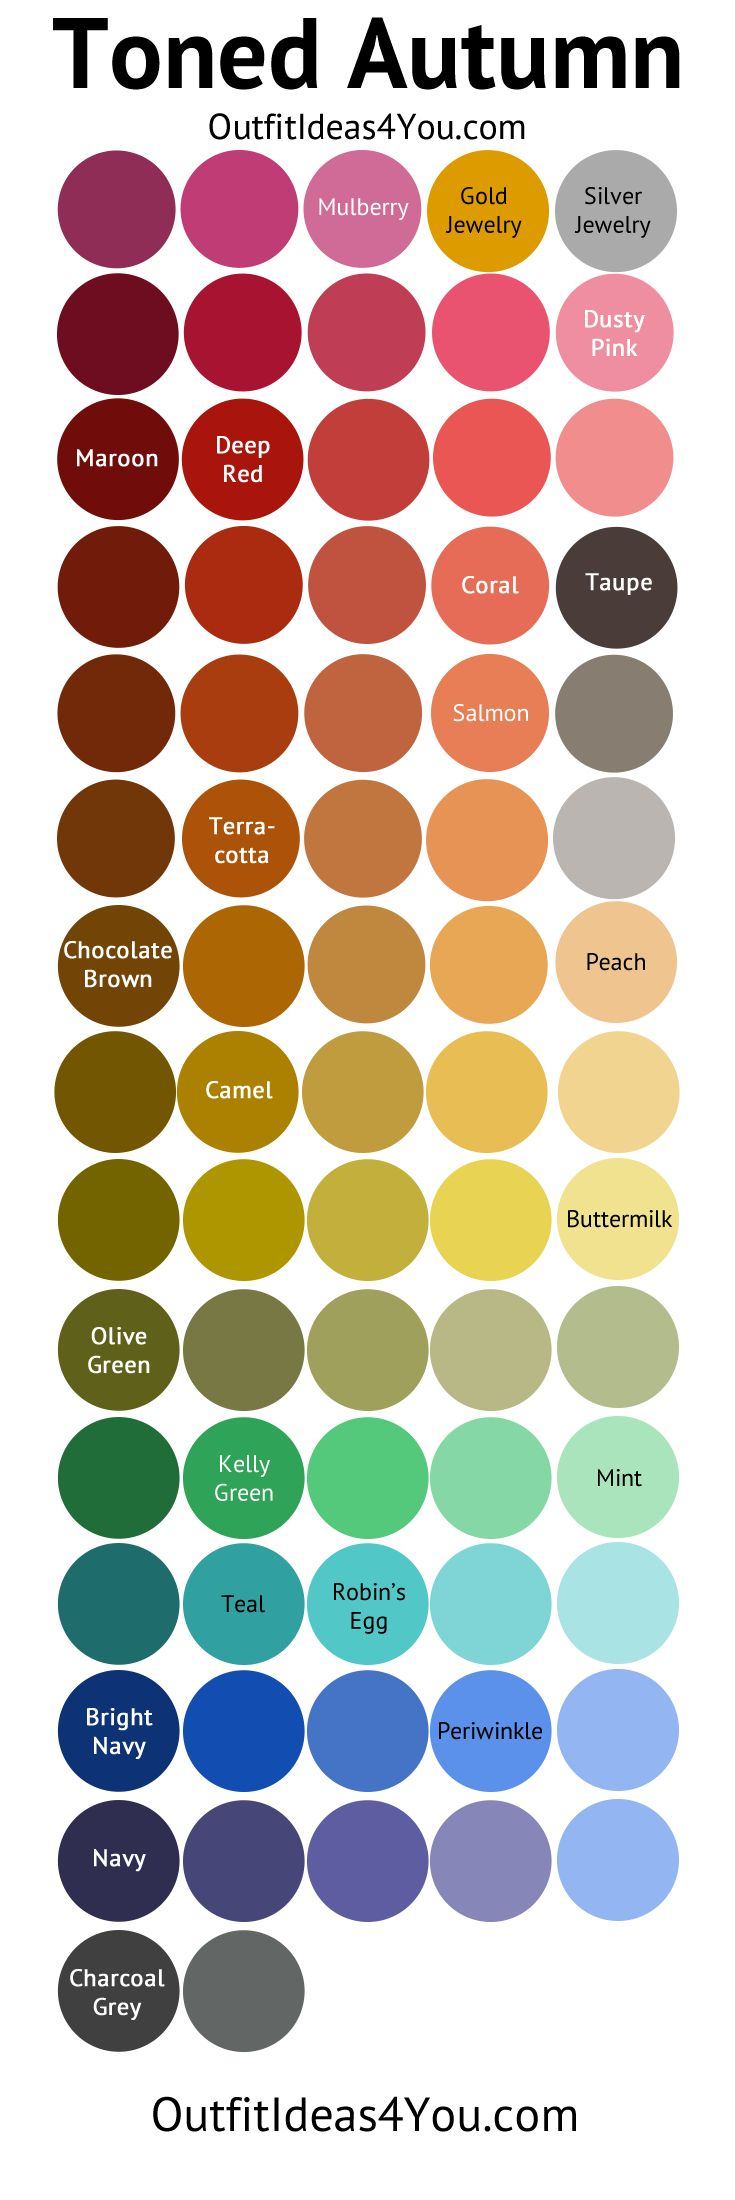 Toned Autumn Color Palette (Soft Autumn)